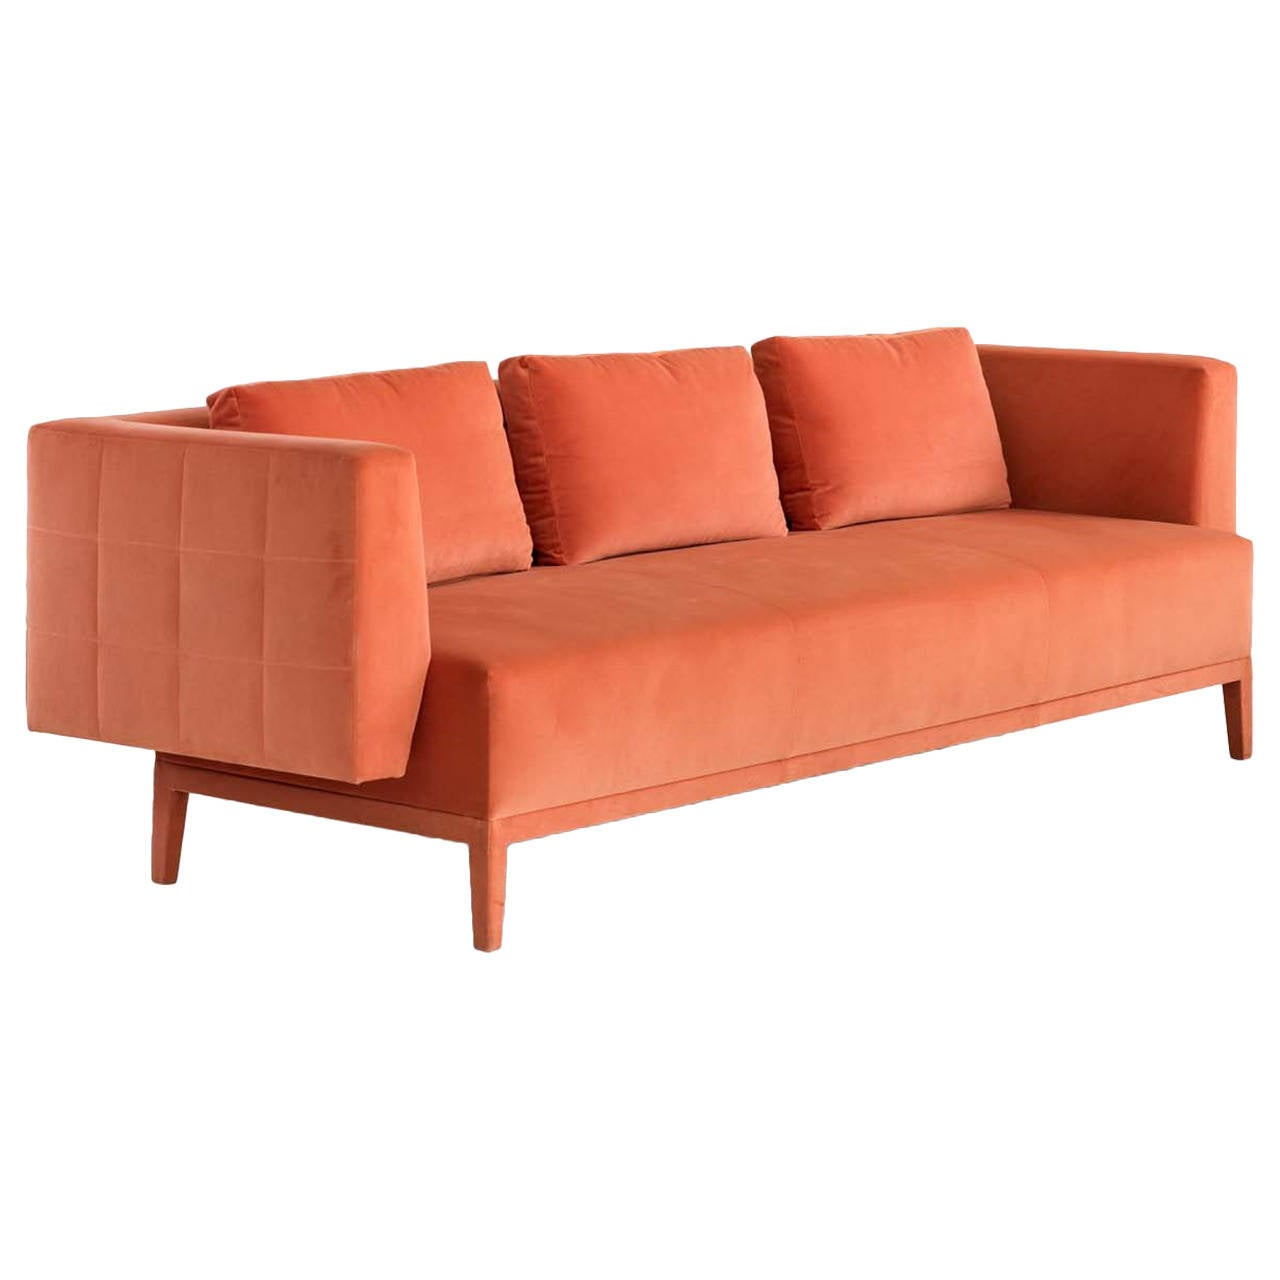 Orange sofas for sale for Furniture sofa sale